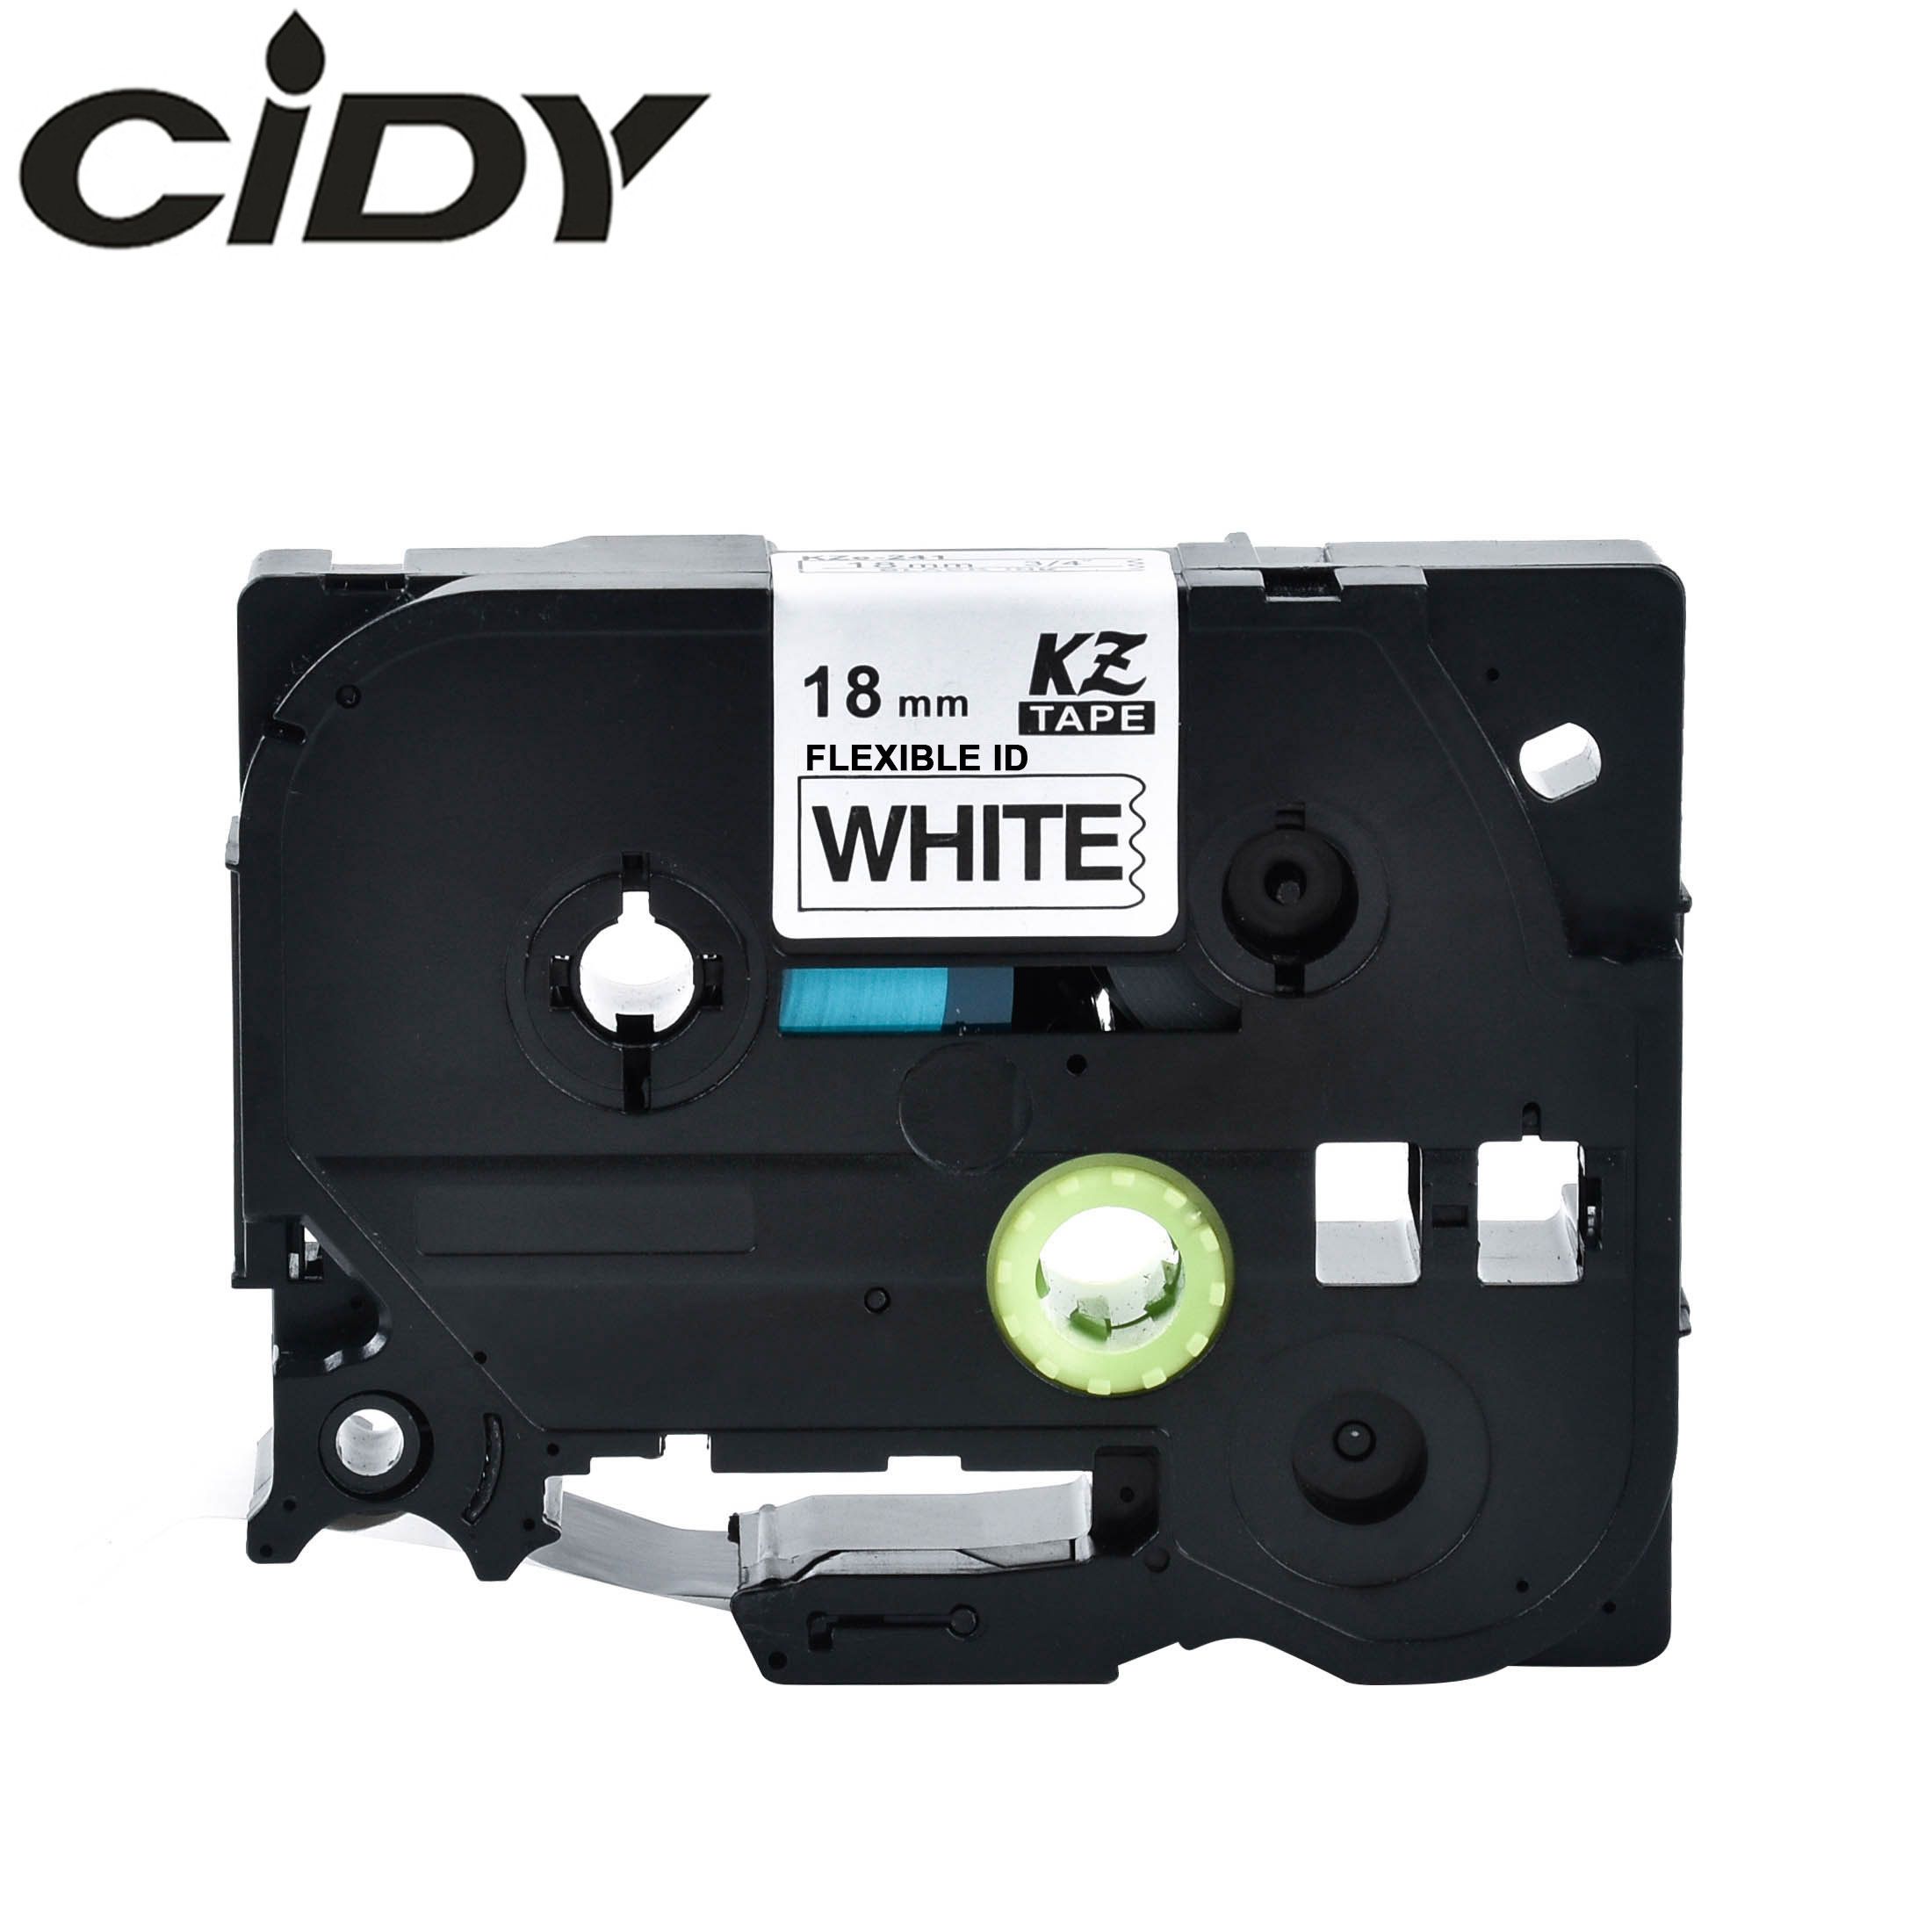 Cidy 10pcs Black on white TZ FX241 TZ FX241 Compatible Flexible Tze Label Tapes Tze FX241